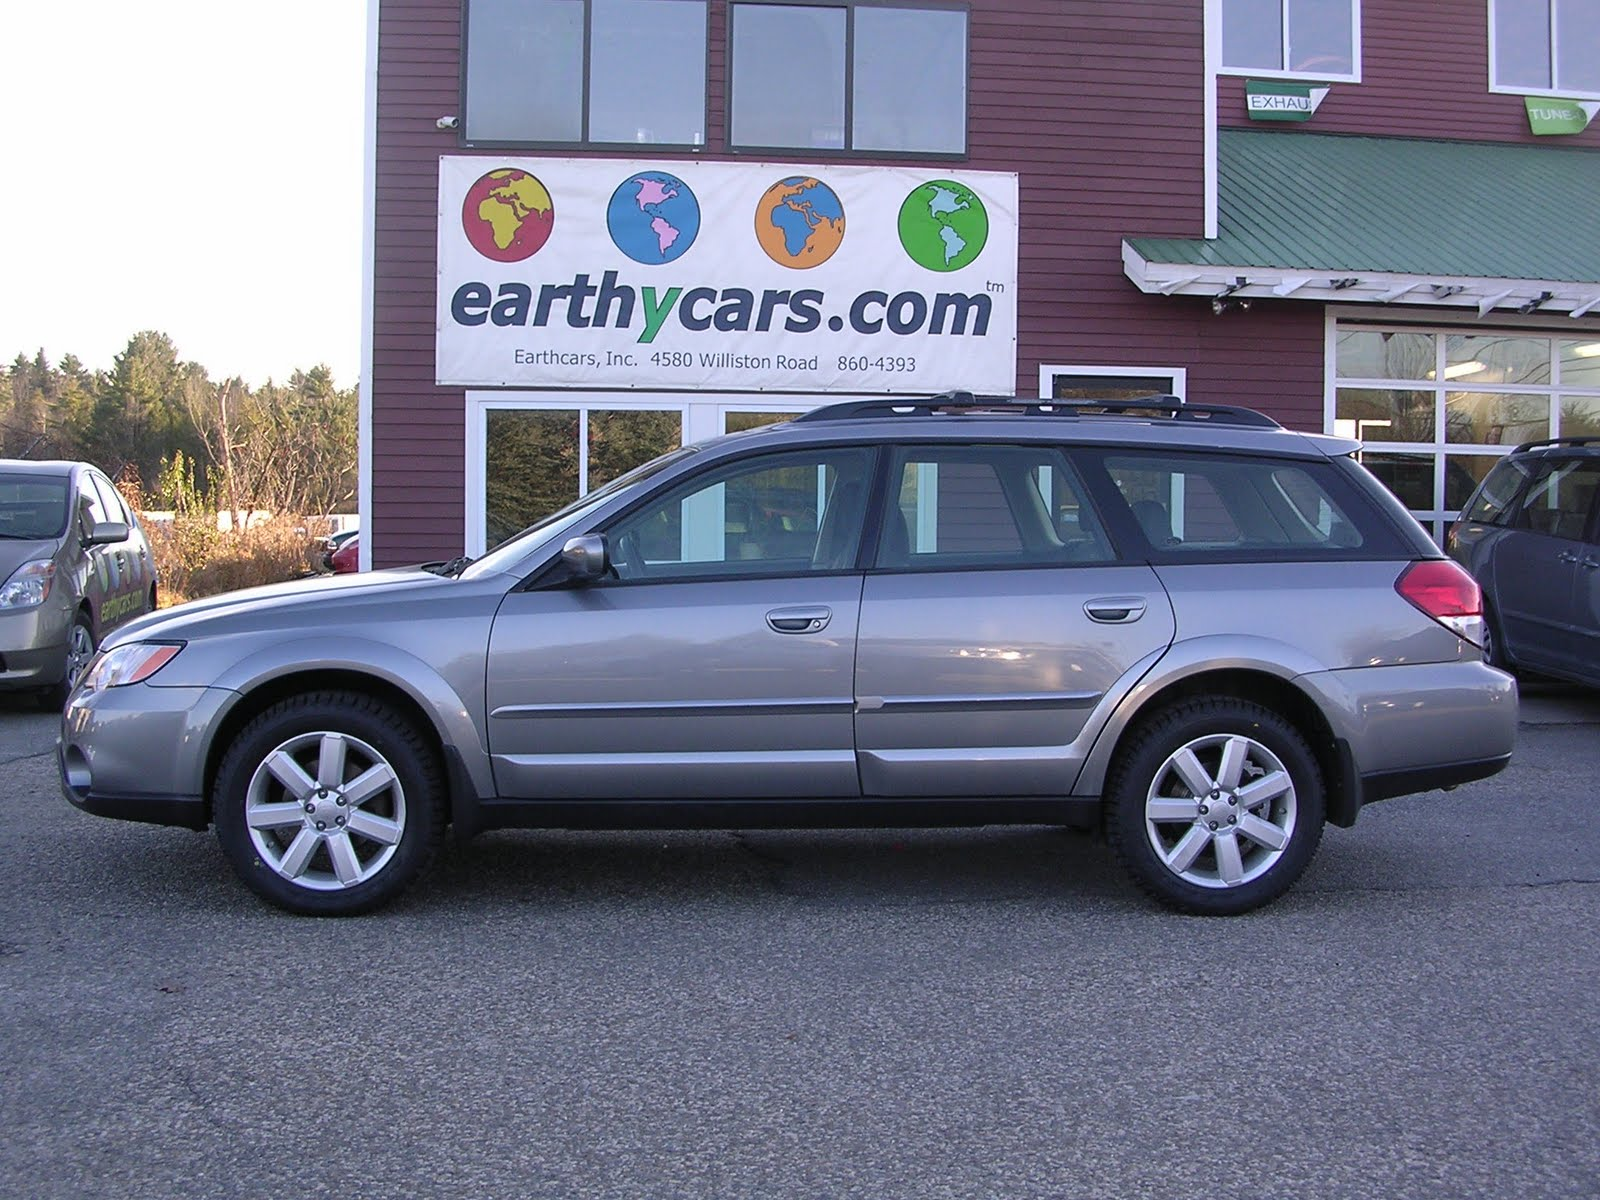 Earthy Cars Blog Earthy Car Of The Week 2008 Subaru